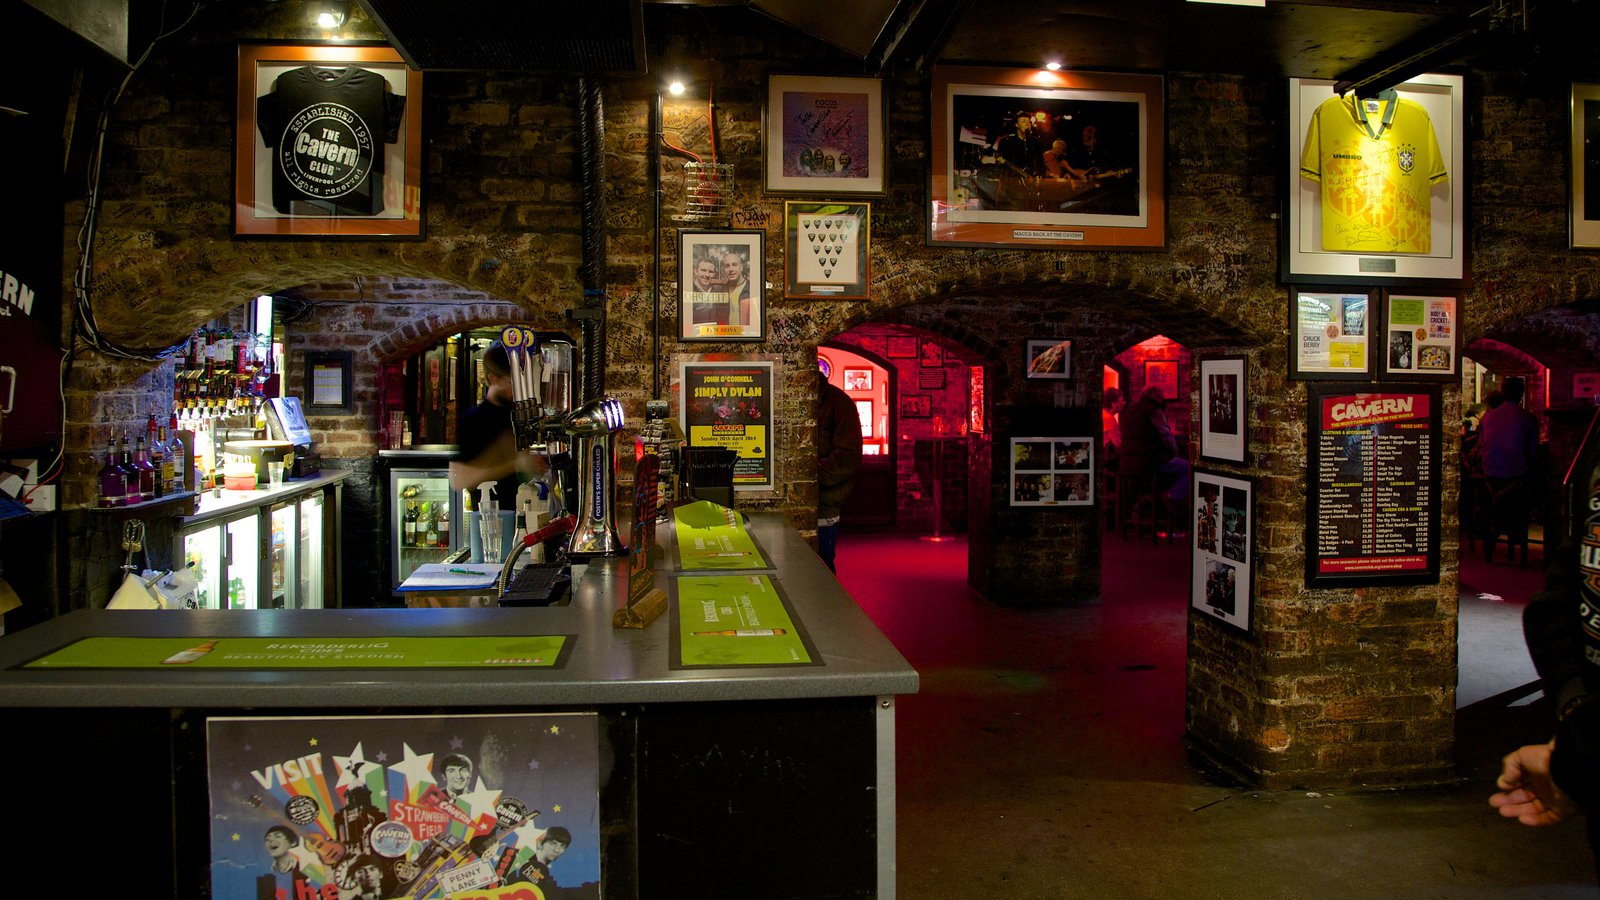 Paul McCartney returns to Liverpool's Cavern Club cellar bar Pictures of the cavern club liverpool